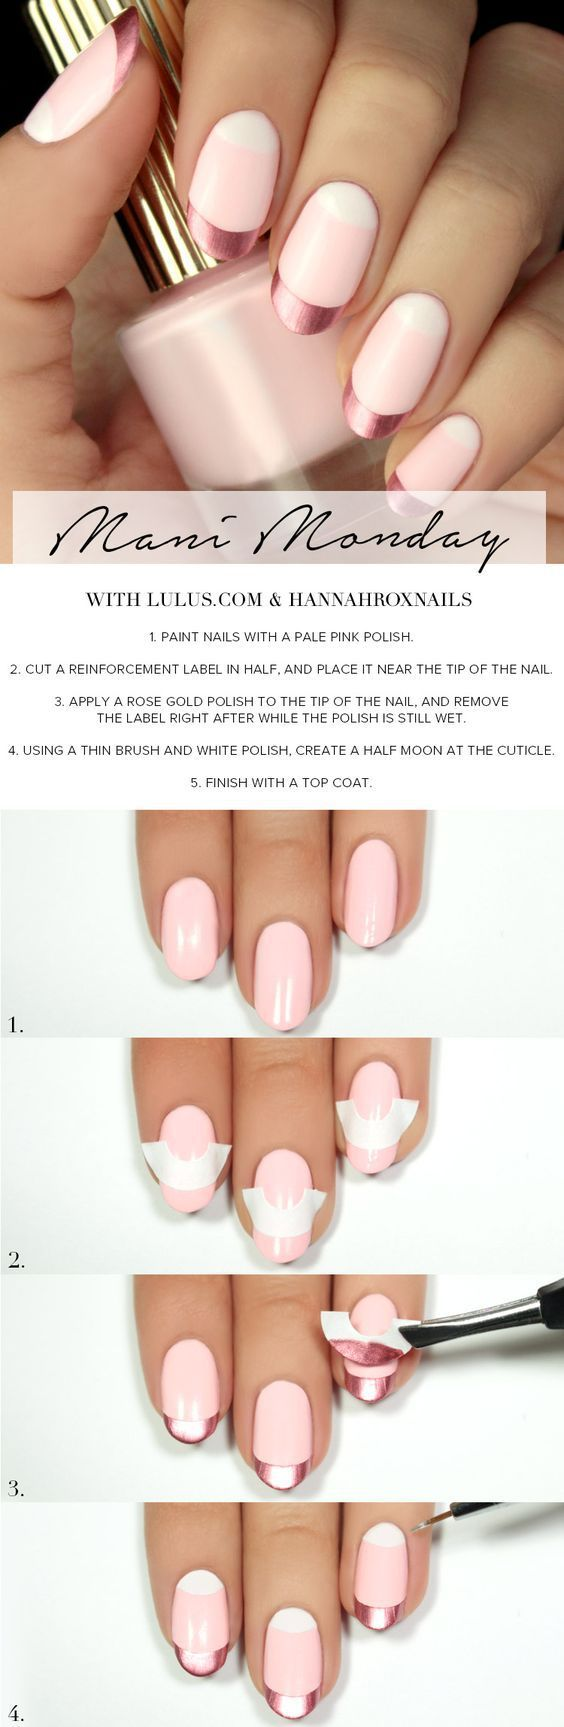 85. SOPHISTICATED PINK NAILS